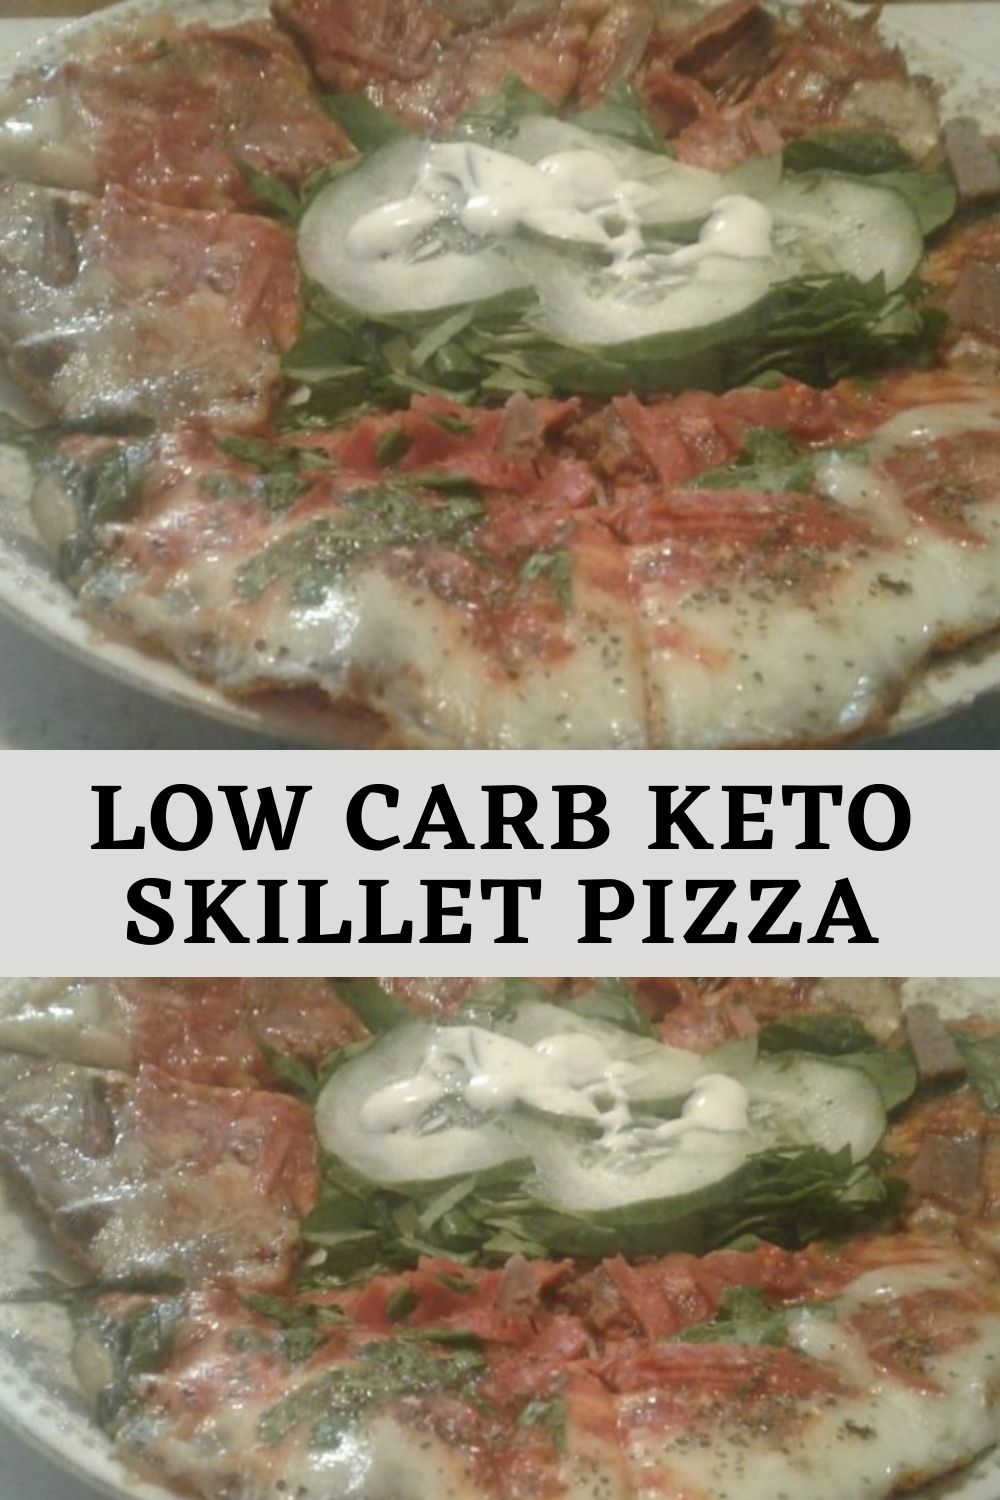 Low carb Keto skillet pizza (1)